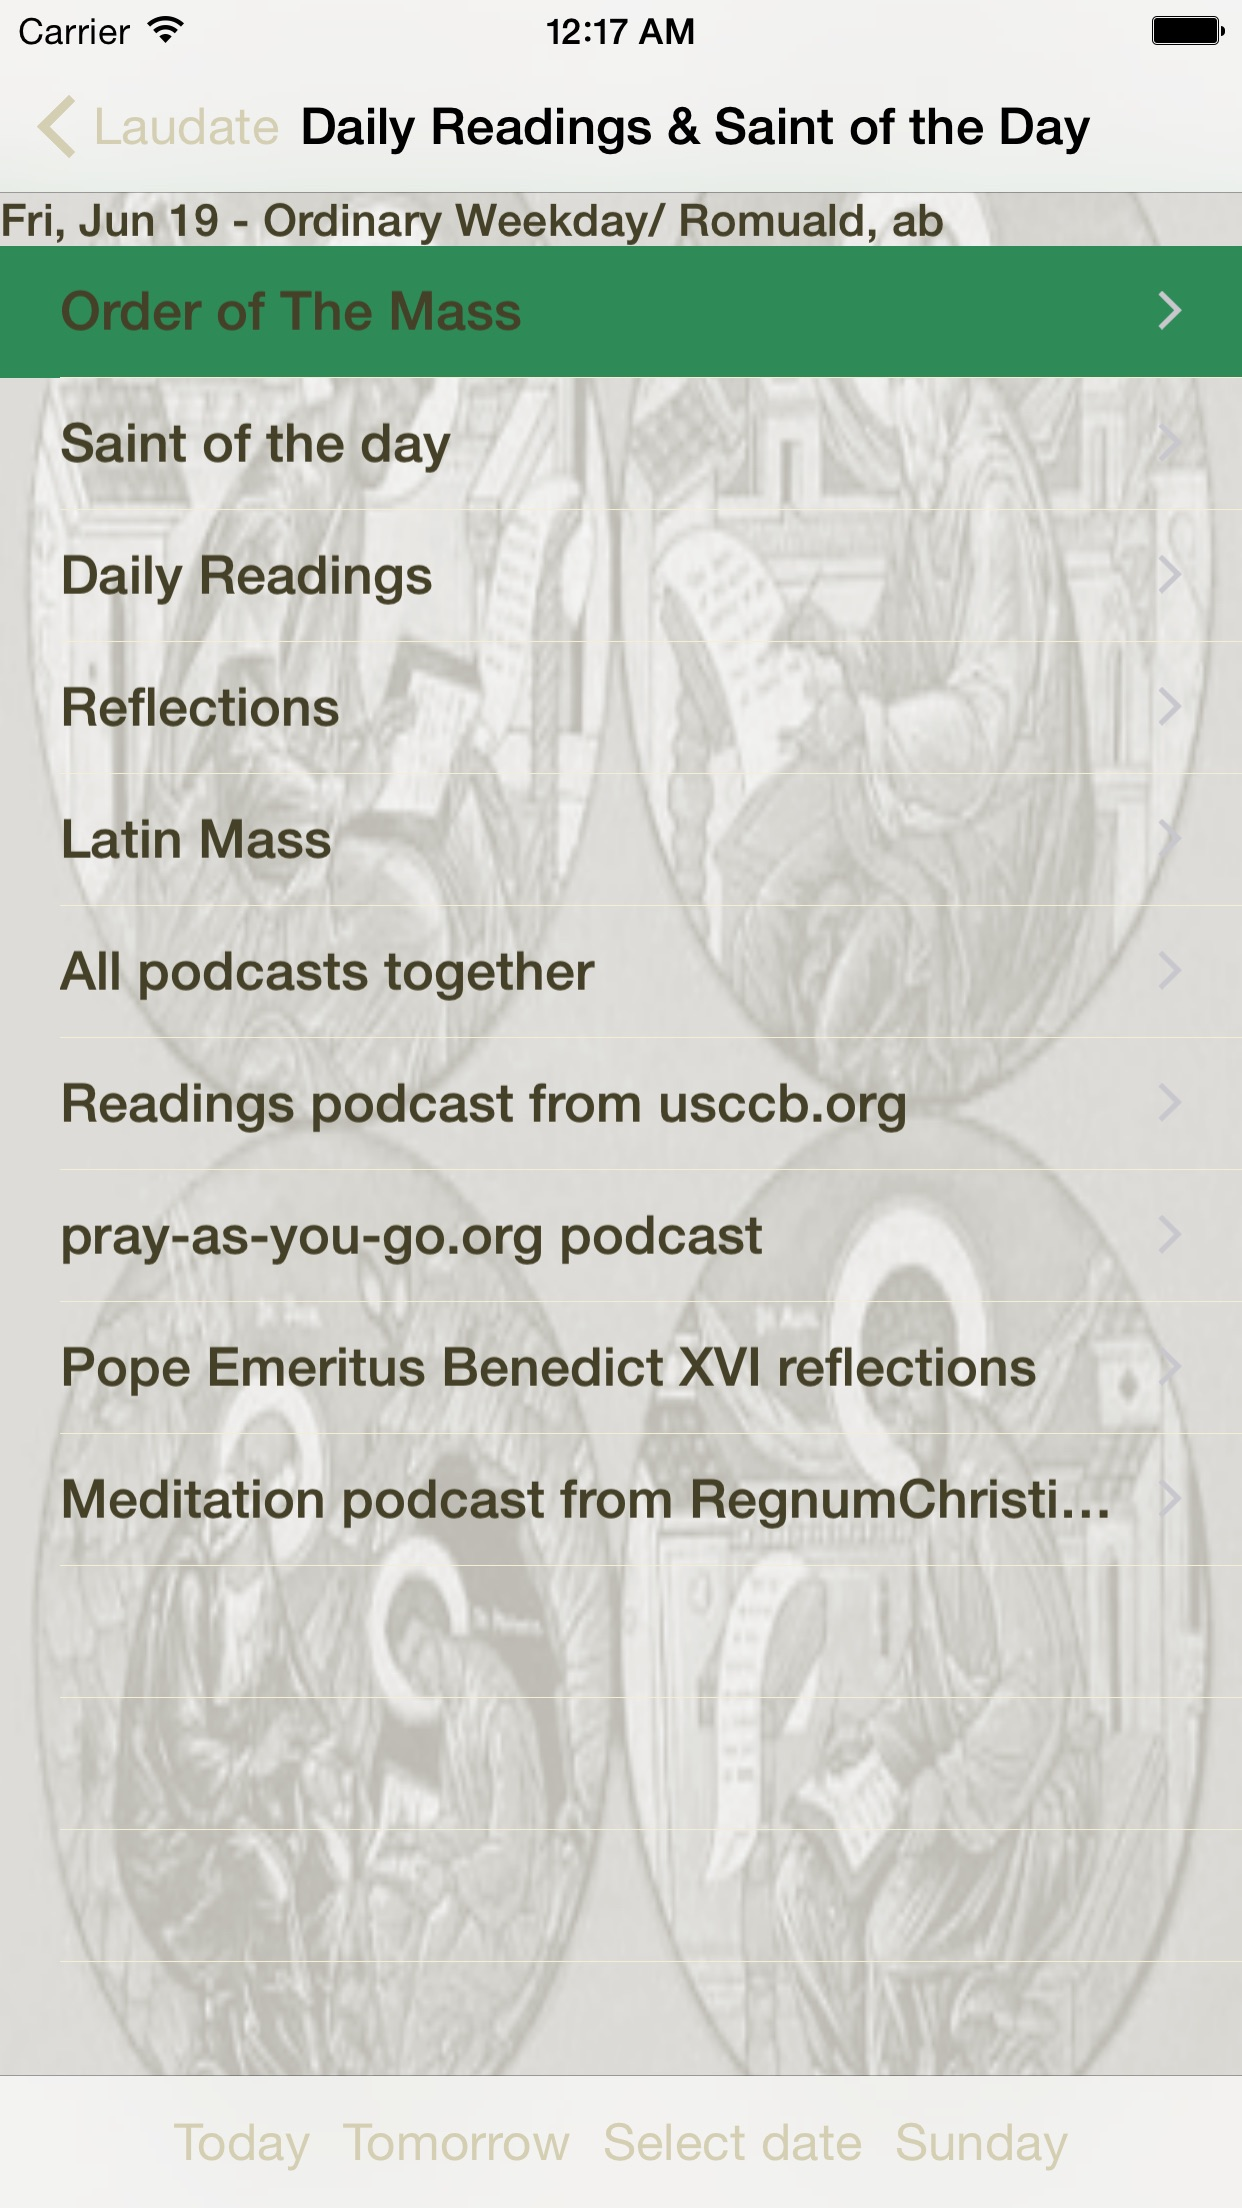 Laudate - #1 Catholic App Screenshot